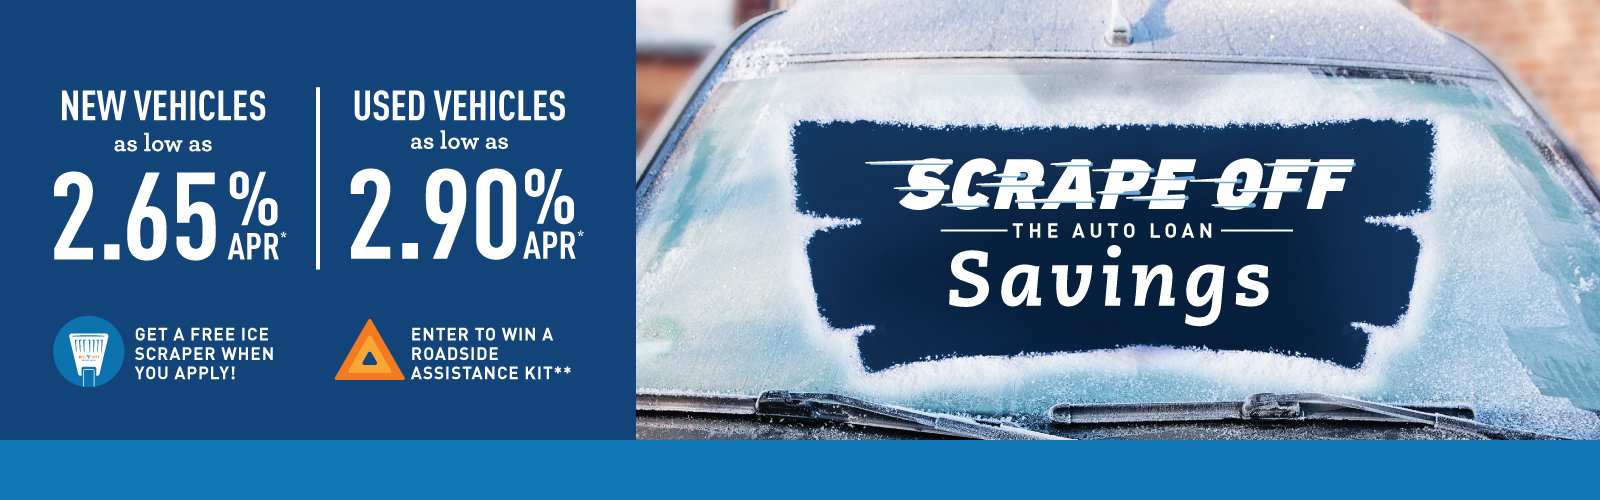 car windshield with ice scraped off to reveal auto savings